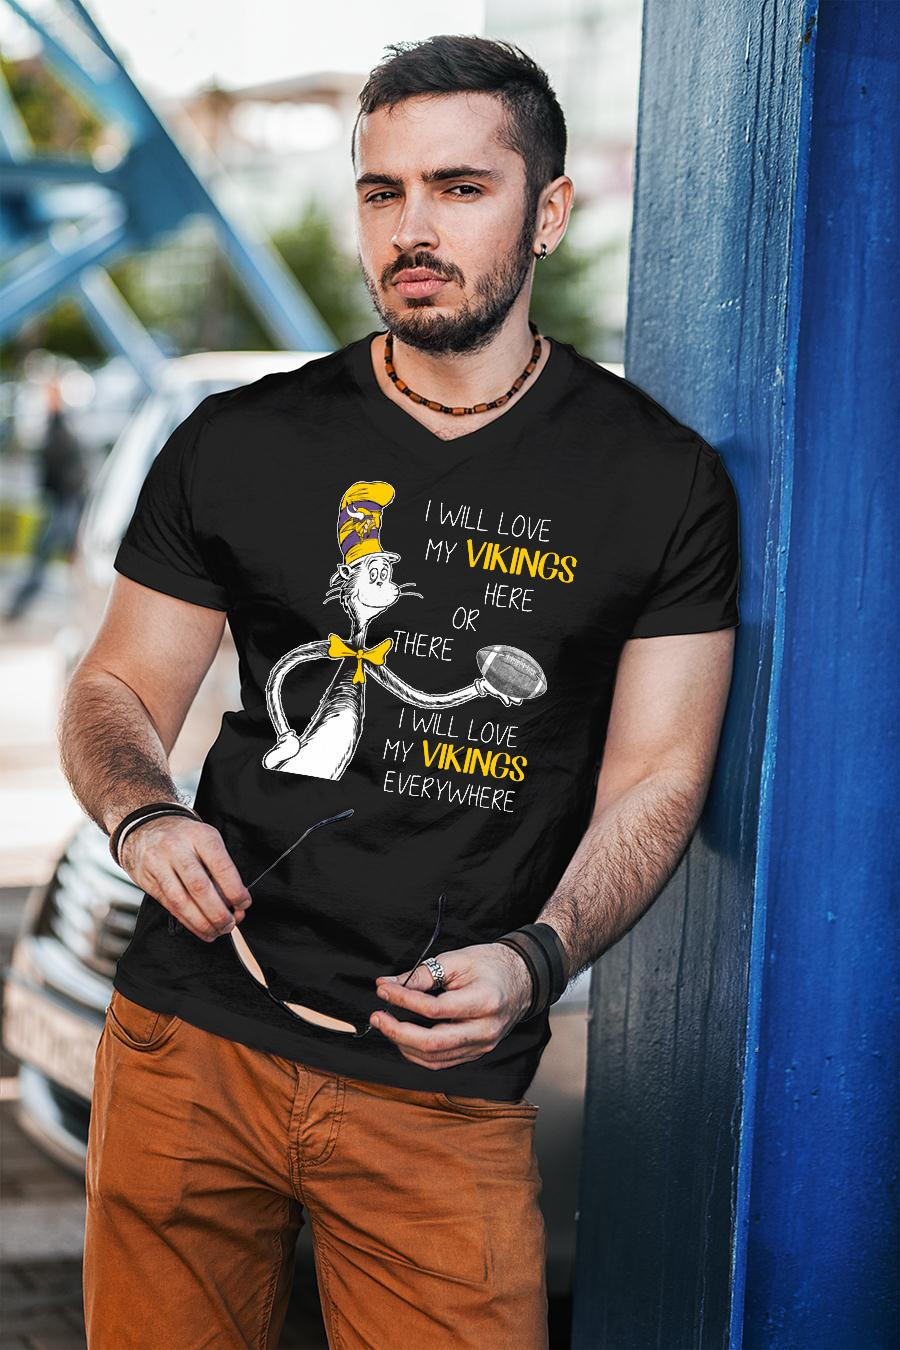 Dr Seuss I will love my Vikings here or there I will love my Vikings TShirt unisex